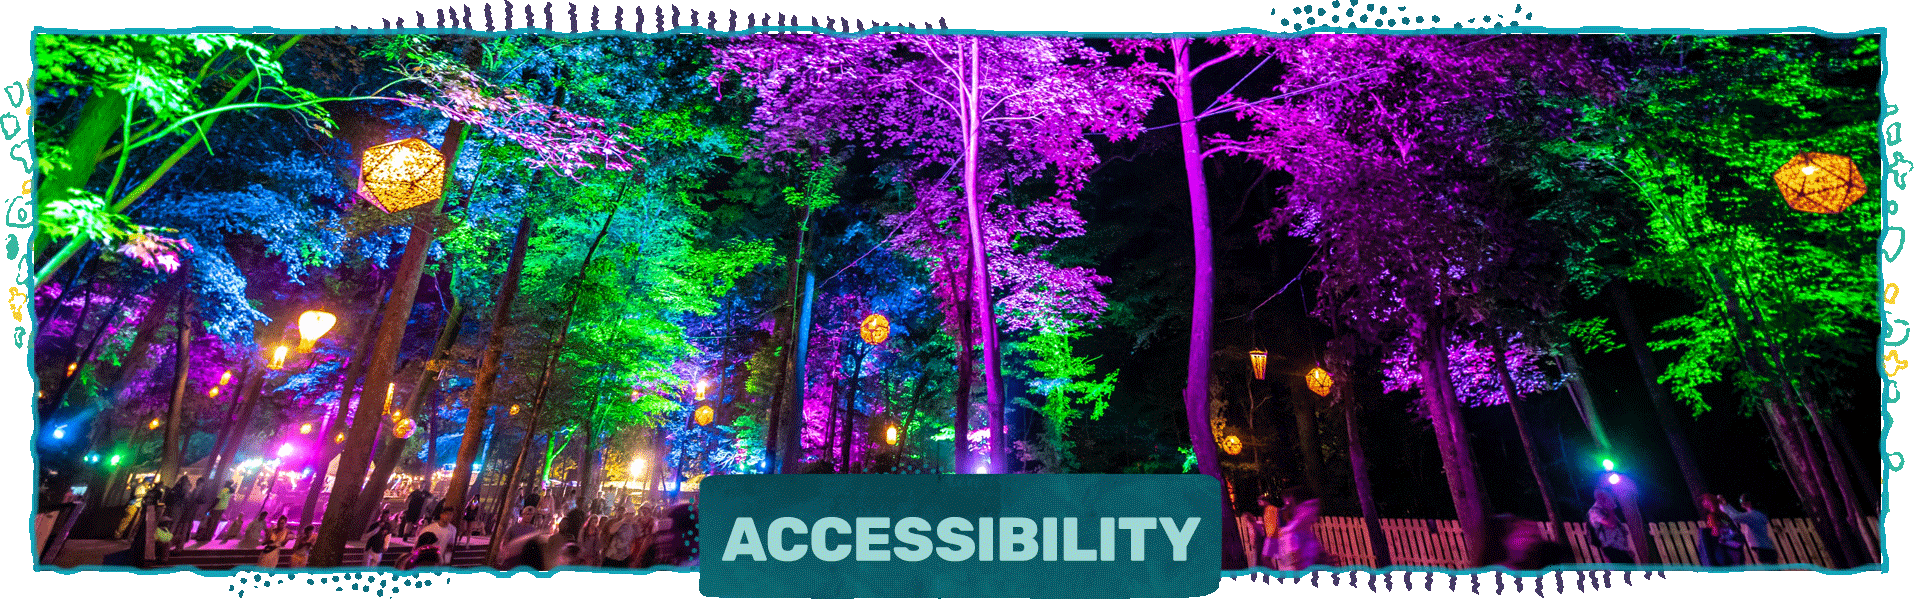 Firefly lasers photo